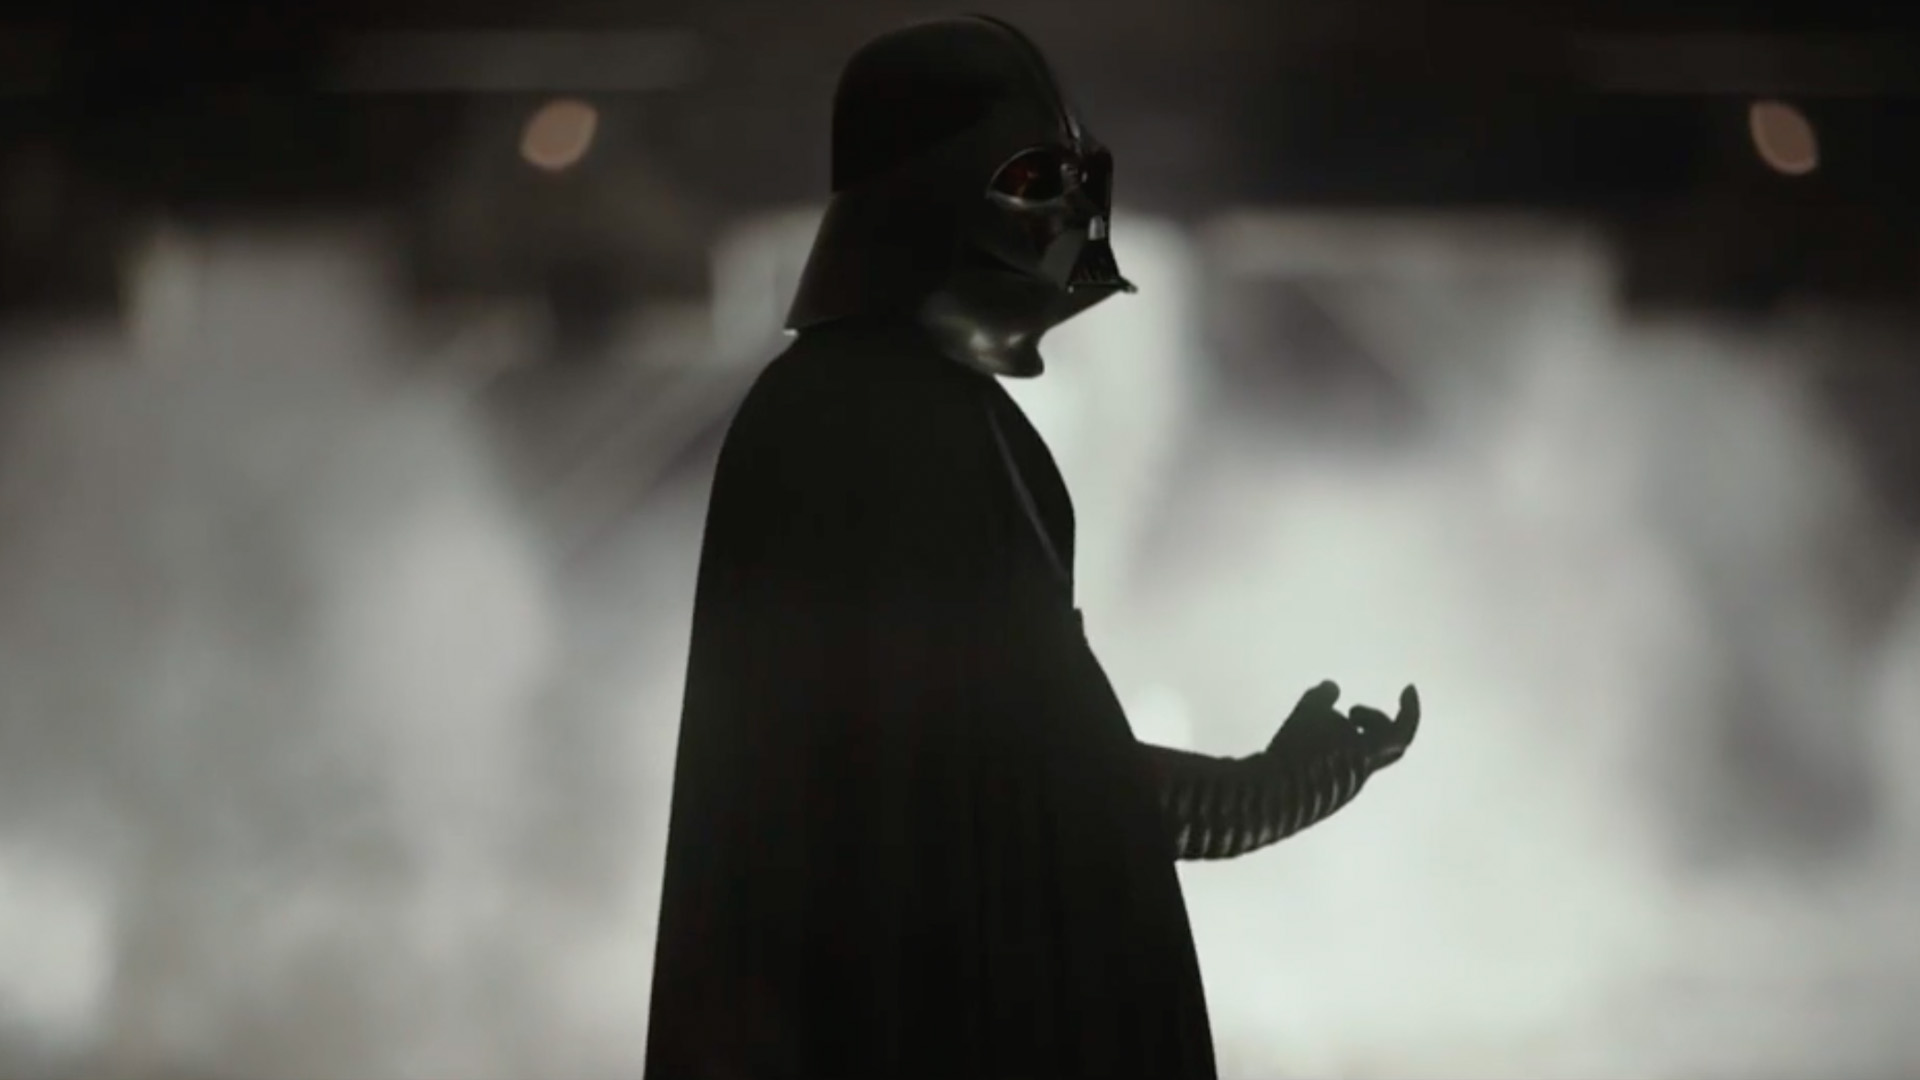 Darth vader shows true skills with the lightsaber